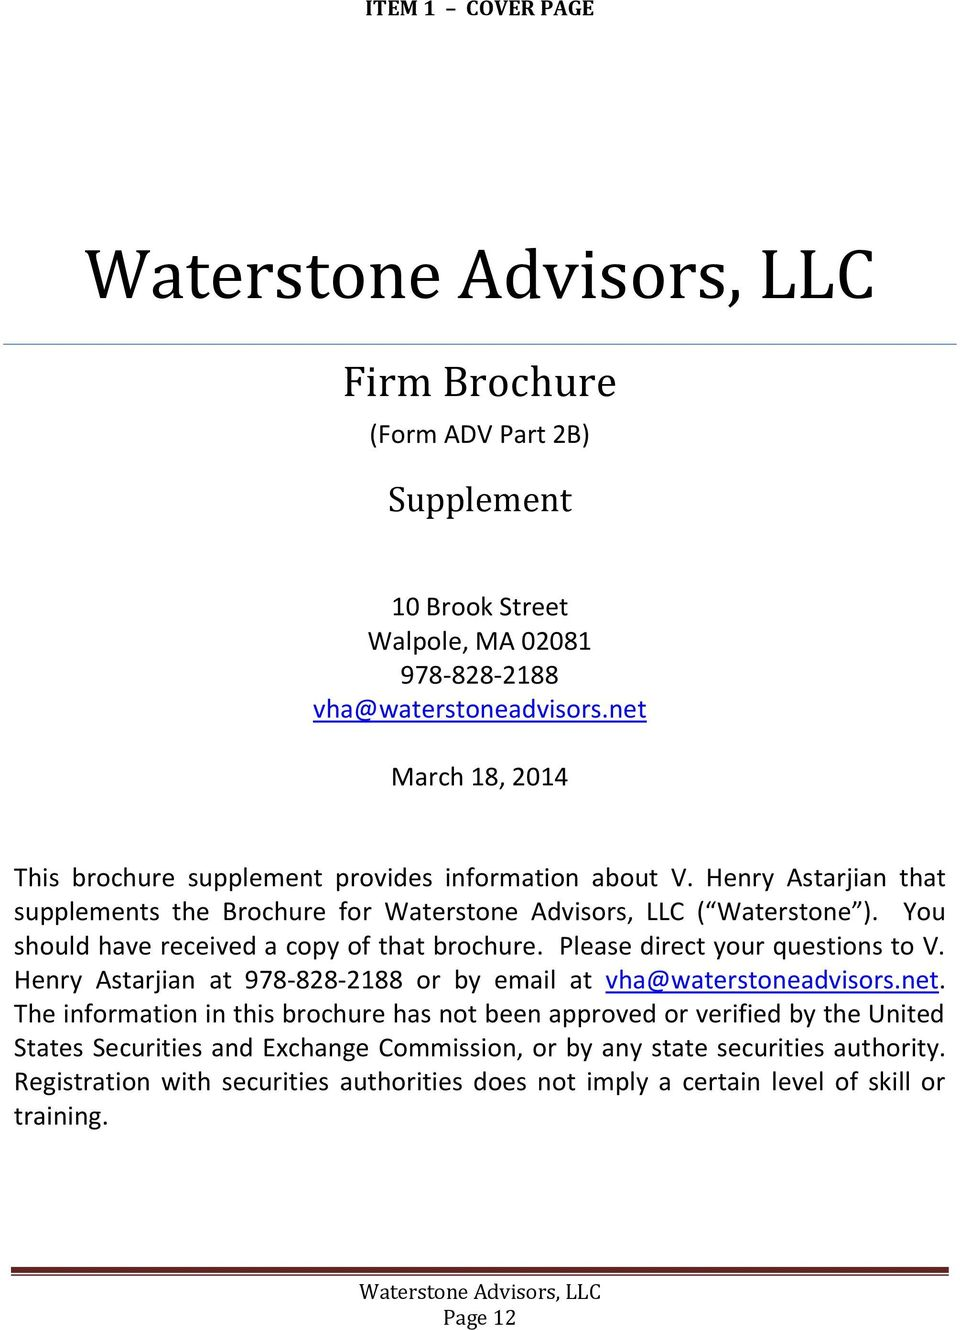 You should have received a copy of that brochure. Please direct your questions to V. Henry Astarjian at 978-828-2188 or by email at vha@waterstoneadvisors.net.